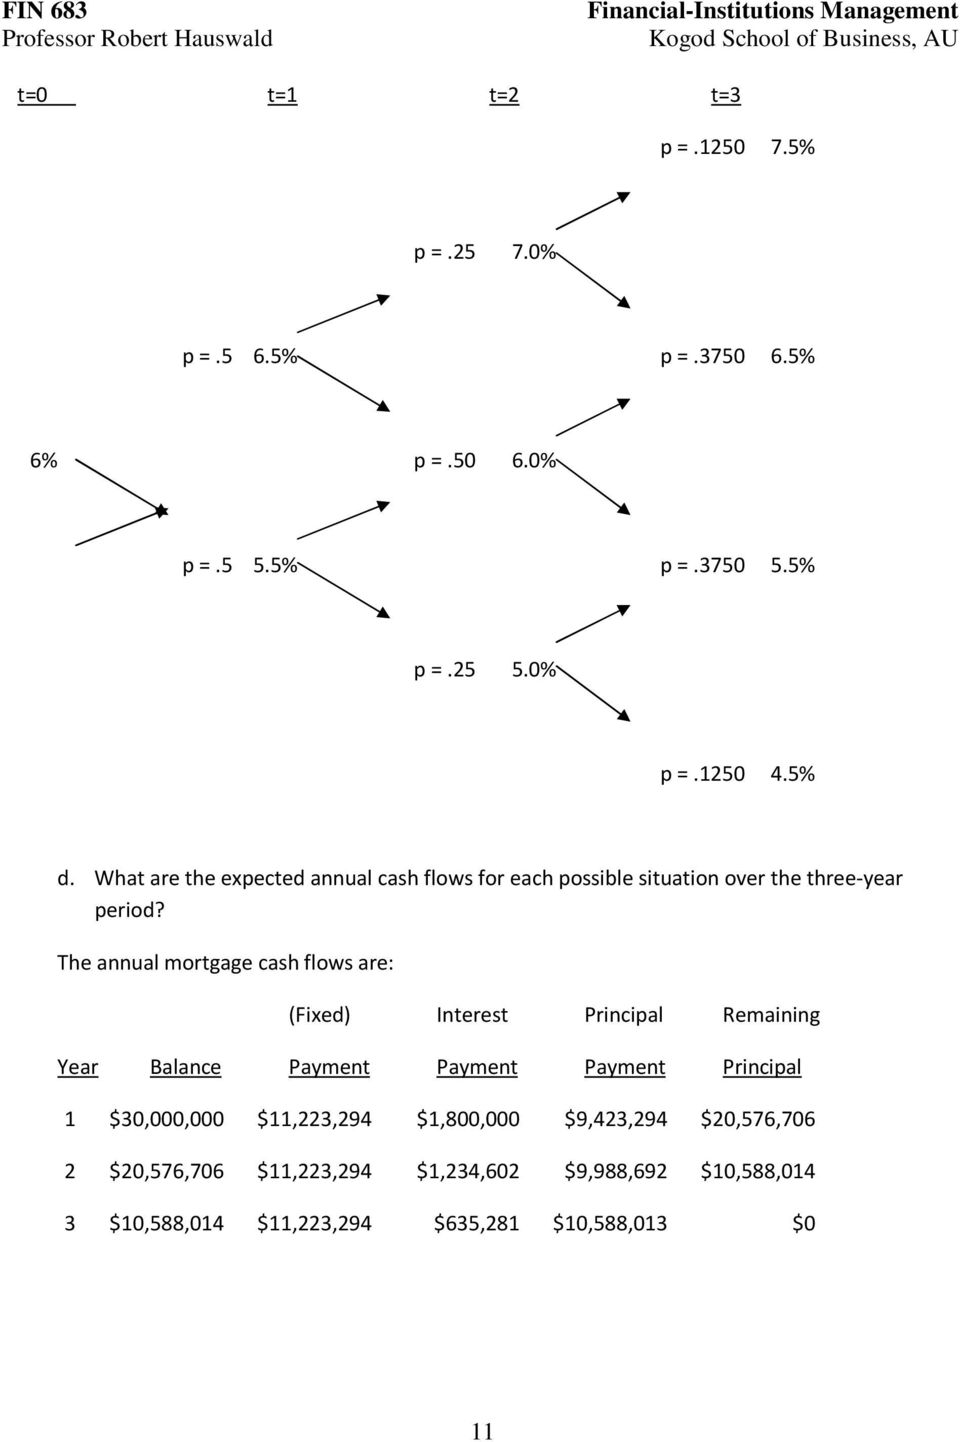 The annual mortgage cash flows are: (Fixed) Interest Principal Remaining Year Balance Payment Payment Payment Principal 1